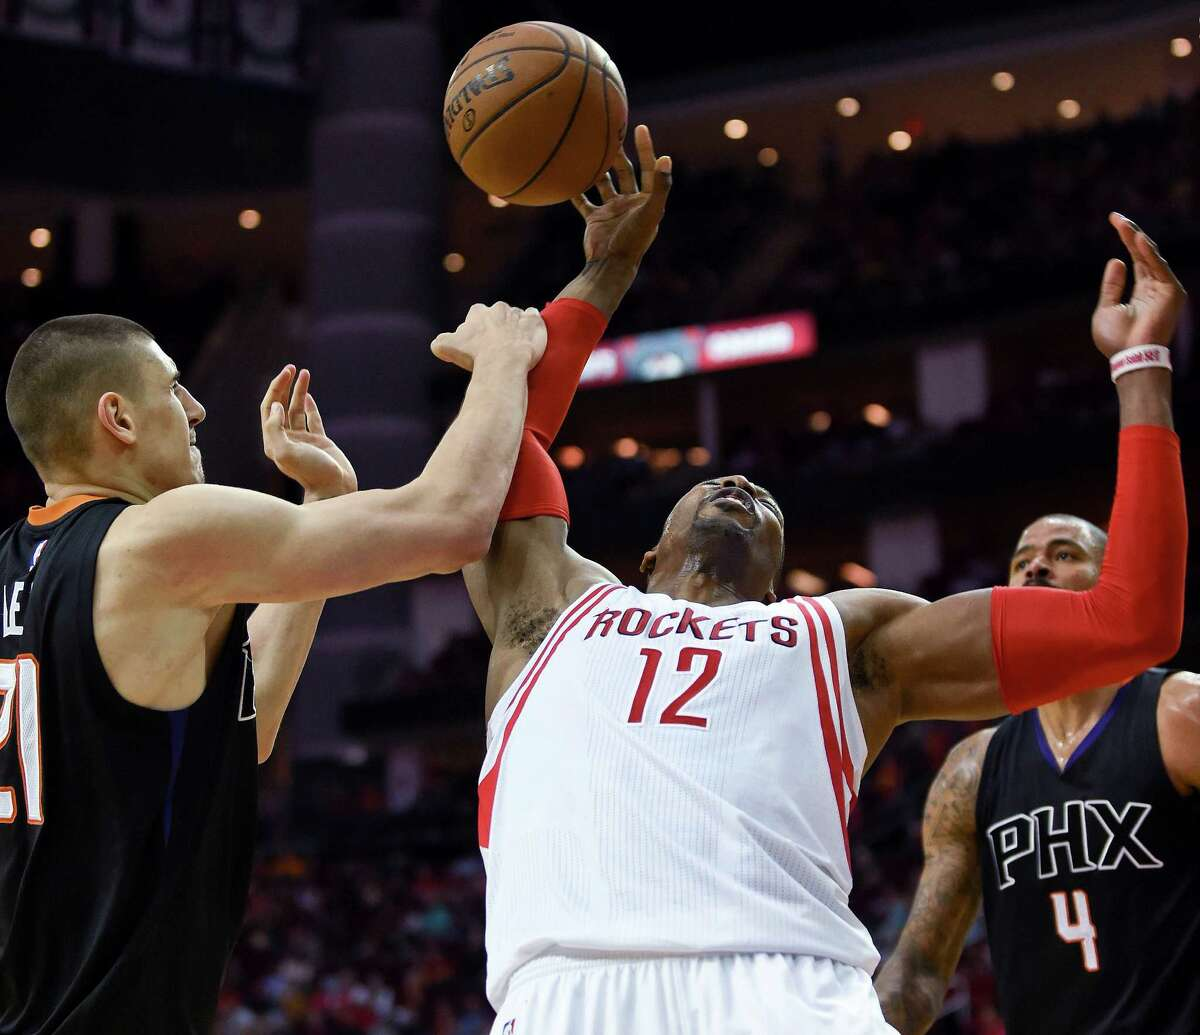 Houston Rockets center Dwight Howard (12) vies for a rebound with Phoenix Suns center Alex Len, left, during the second half of an NBA basketball game, Thursday, April 7, 2016, in Houston. Phoenix won 124-115. (AP Photo/Eric Christian Smith) ORG XMIT: TXES113